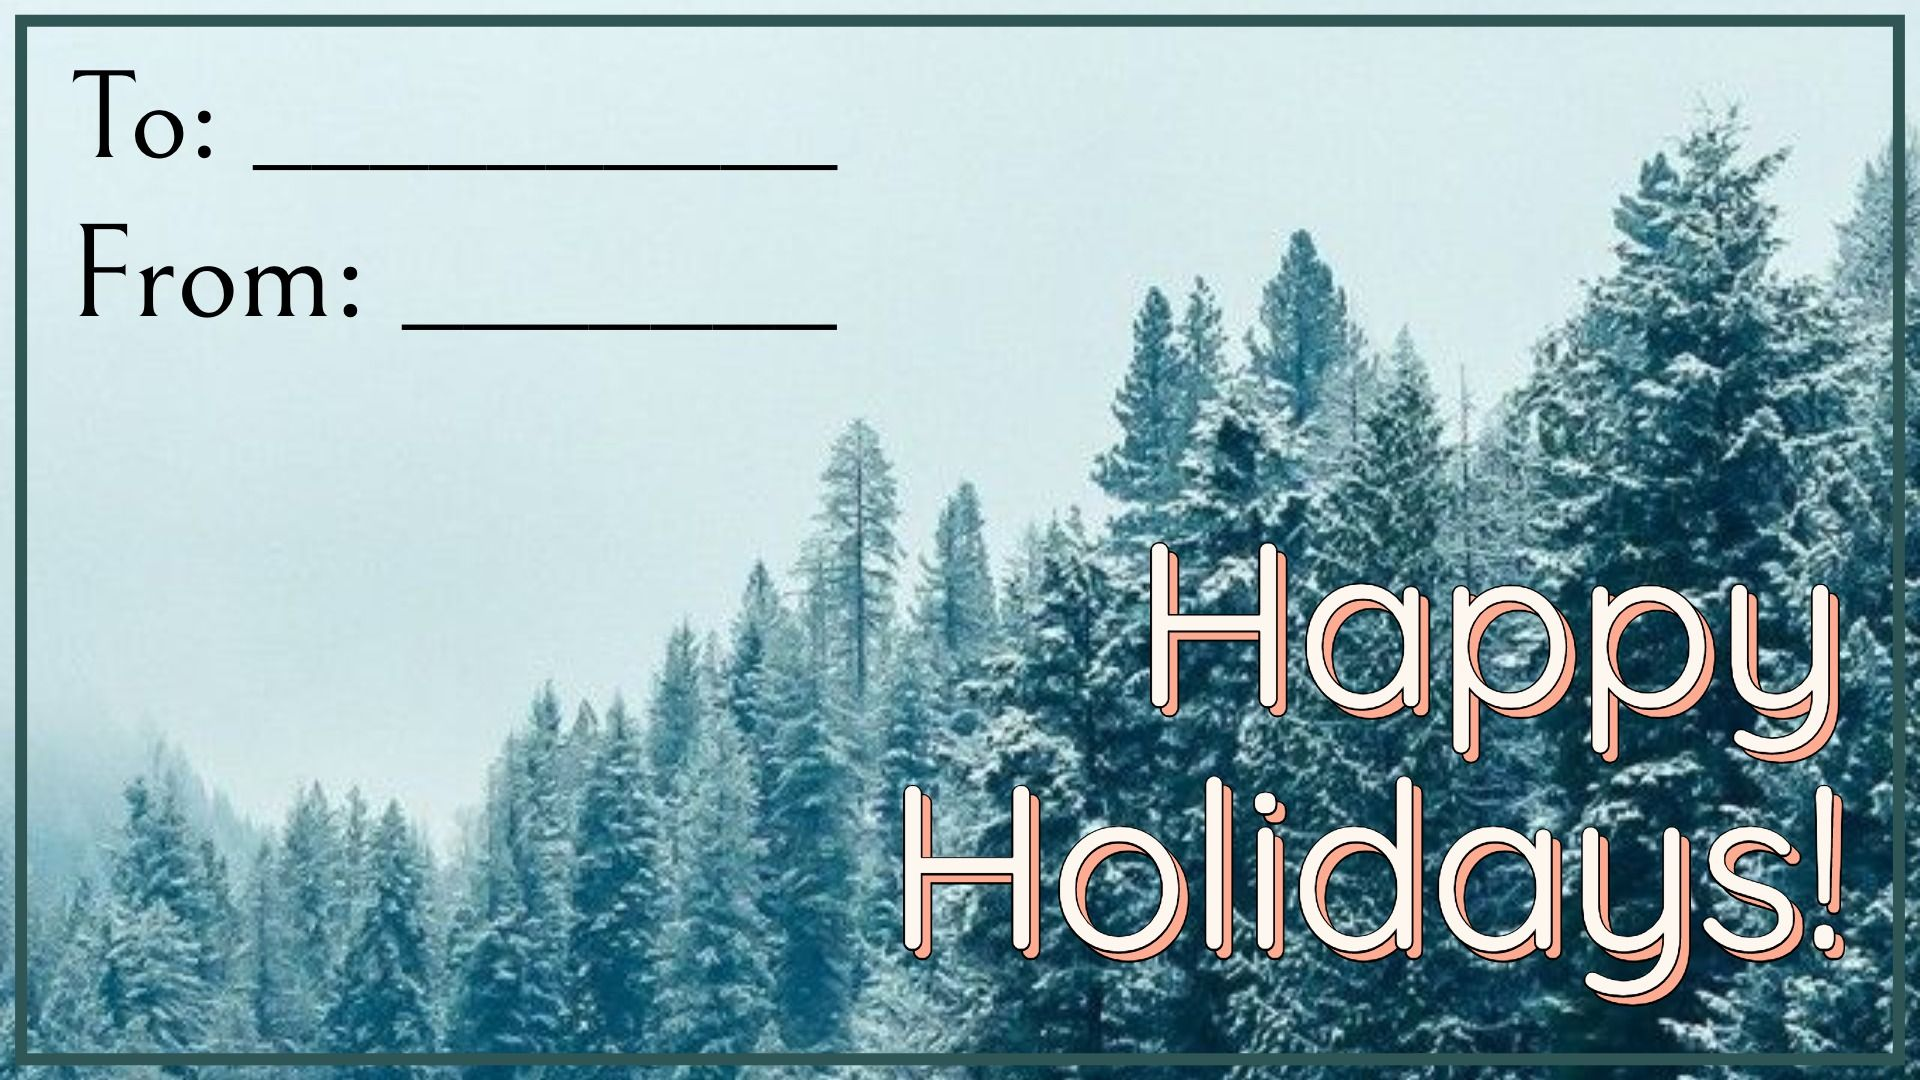 The first holiday ecard template, with snowy trees.